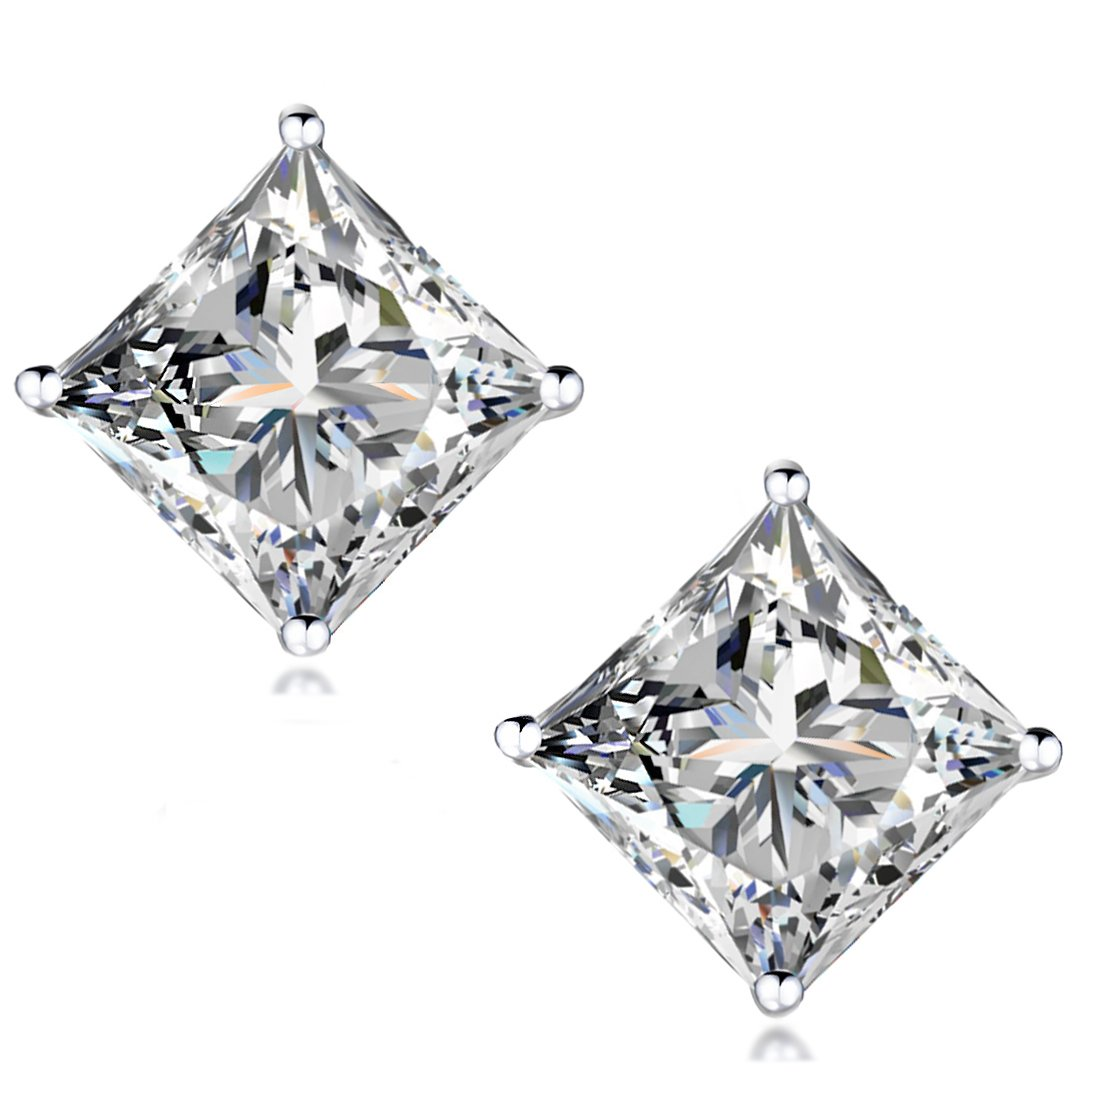 ''STUNNING FLAME'' 18K Gold Plated Silver Princess Cut Simulated Diamond CZ Stud Earrings, 1.6ct